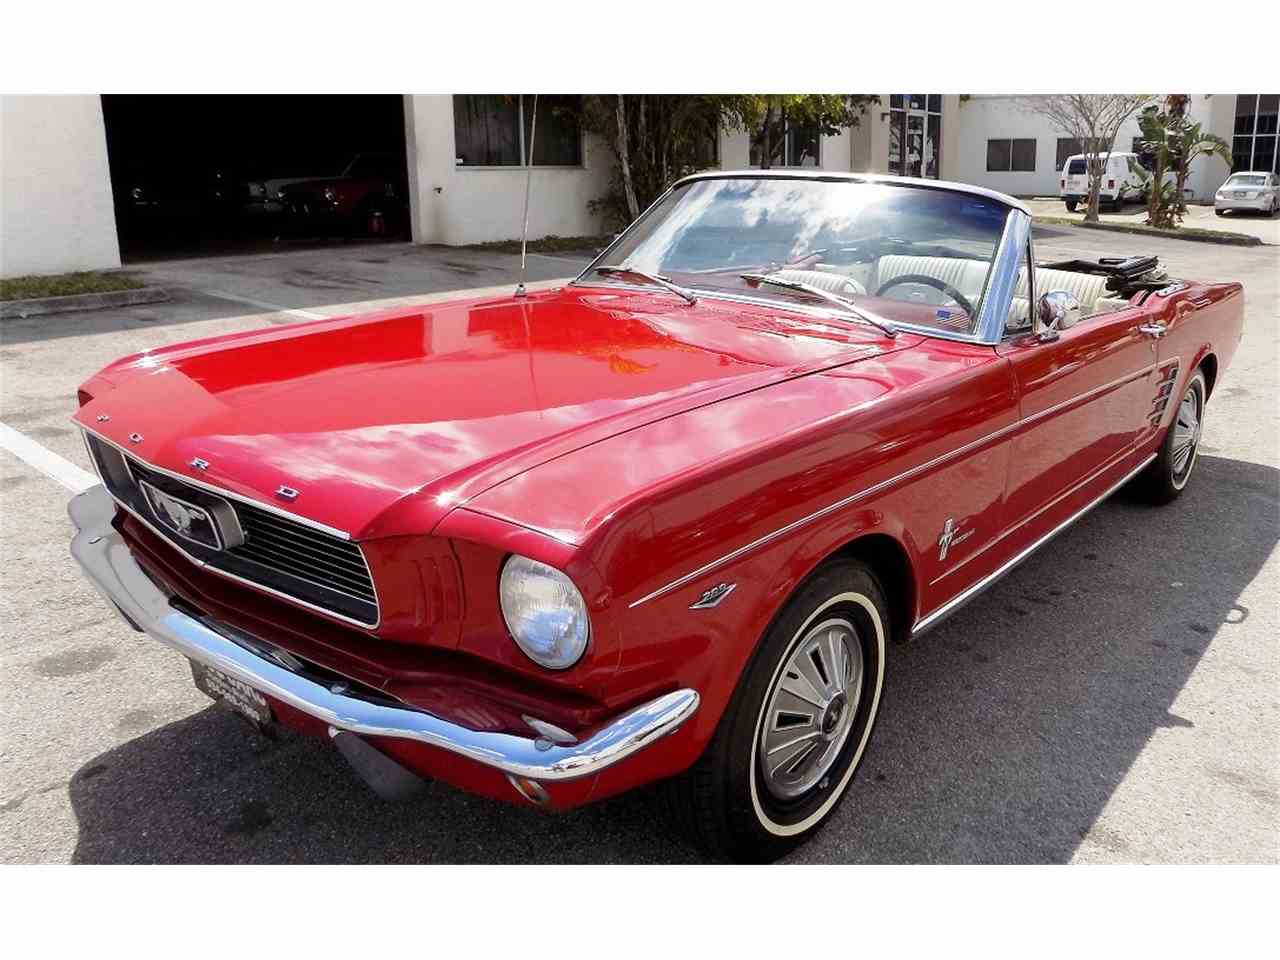 Ford Mustang For Sale ClassicCarscom CC - Pompano classic cars